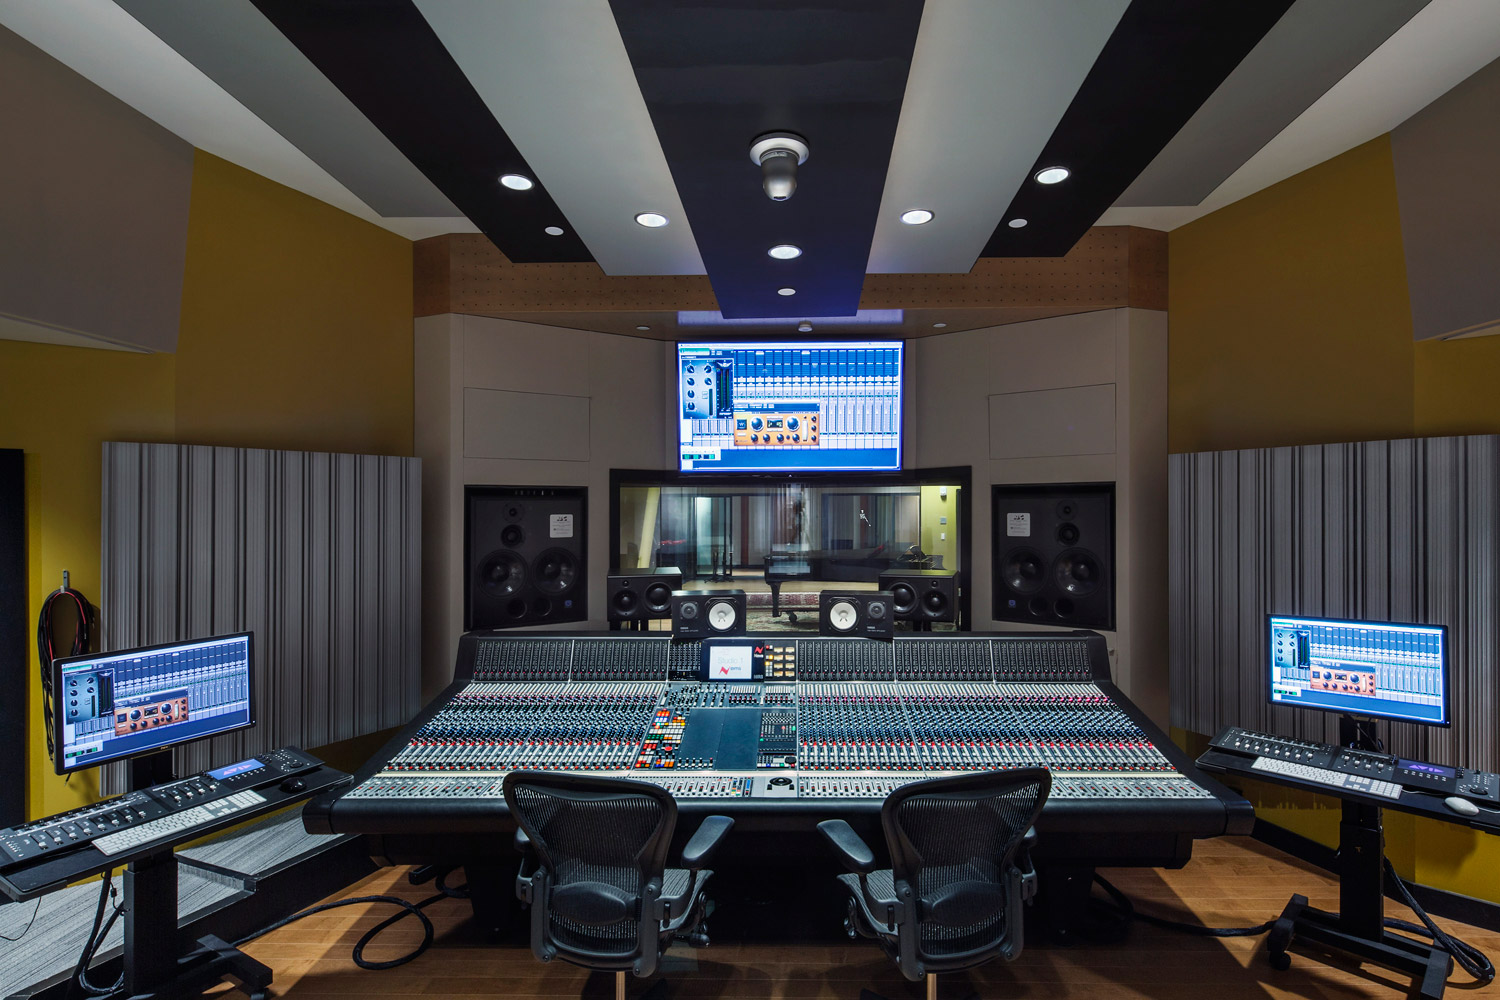 Berklee College of Music 160 Mass Ave state-of-the-art new recording studios. Shames Family Scoring Stage is the biggest studio of the new complex. Designed by WSDG.